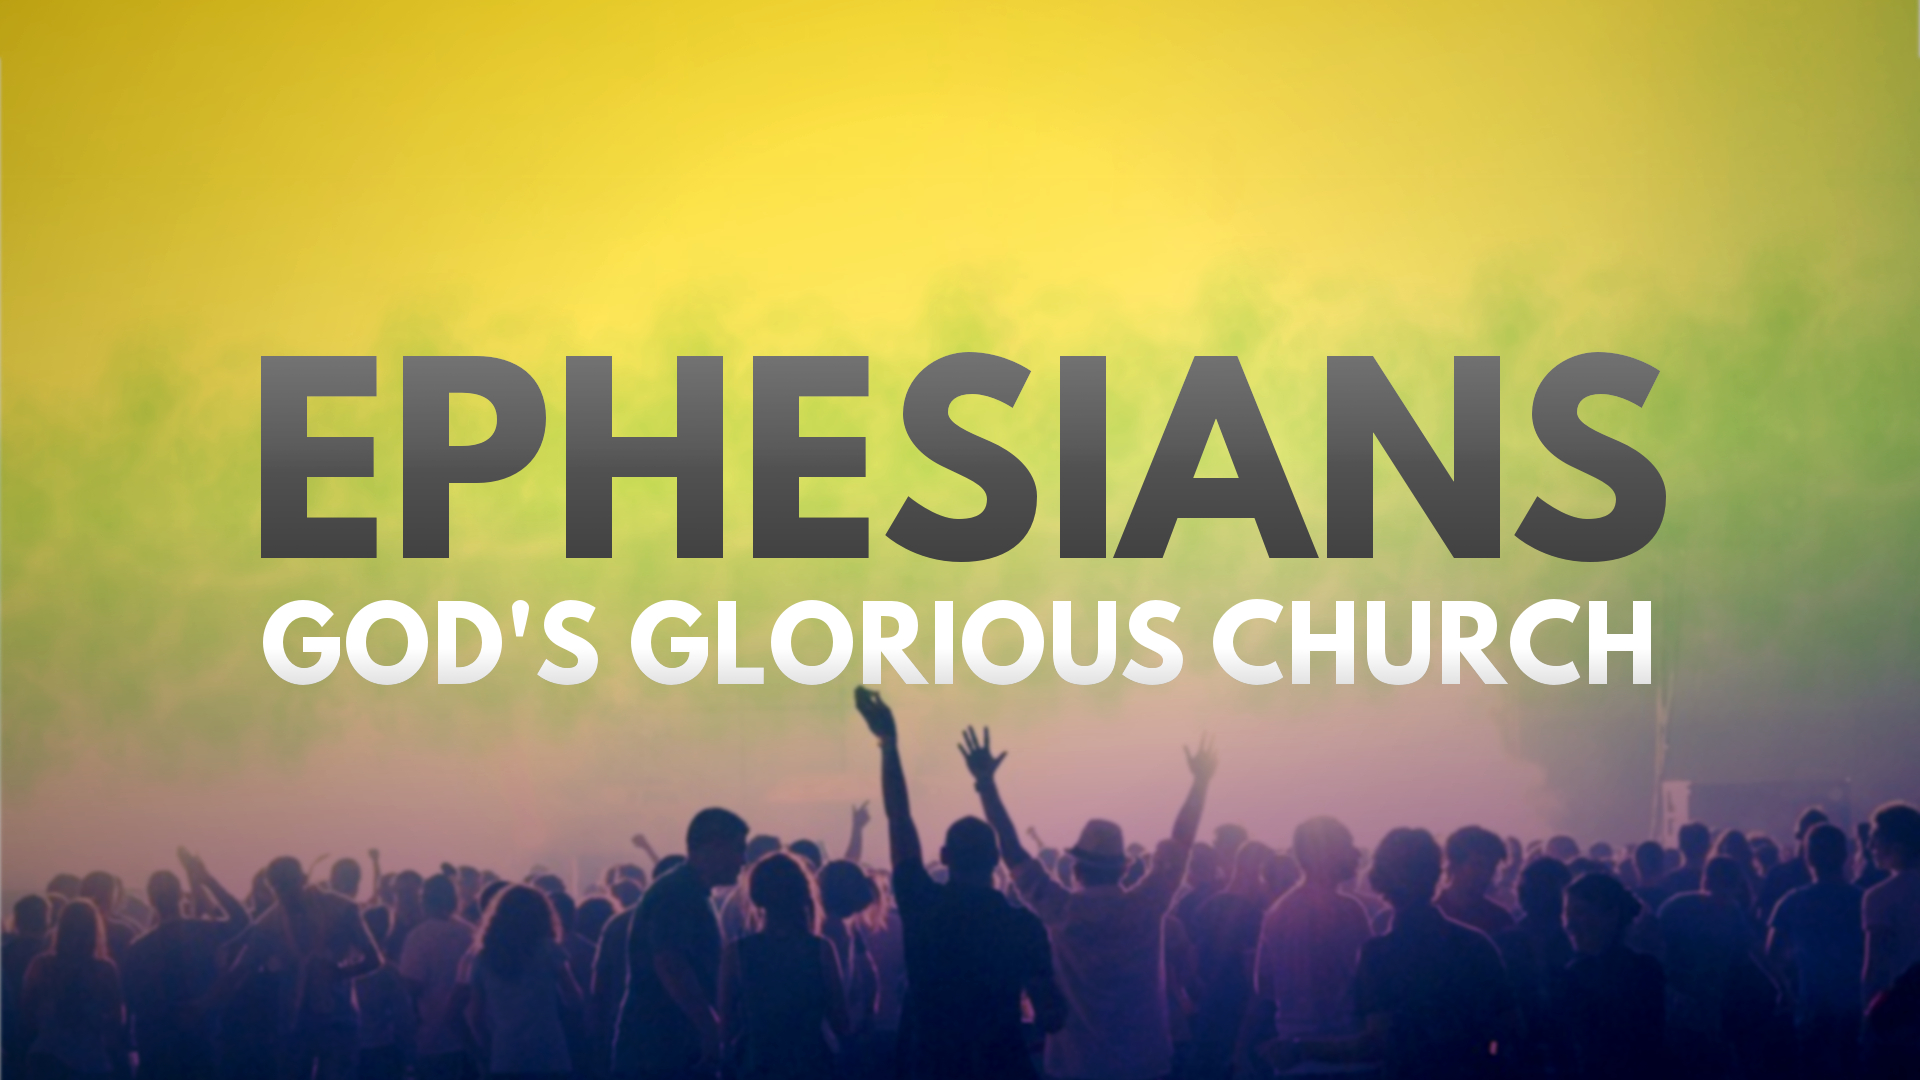 Ephesians Overview | God's Glorious Church